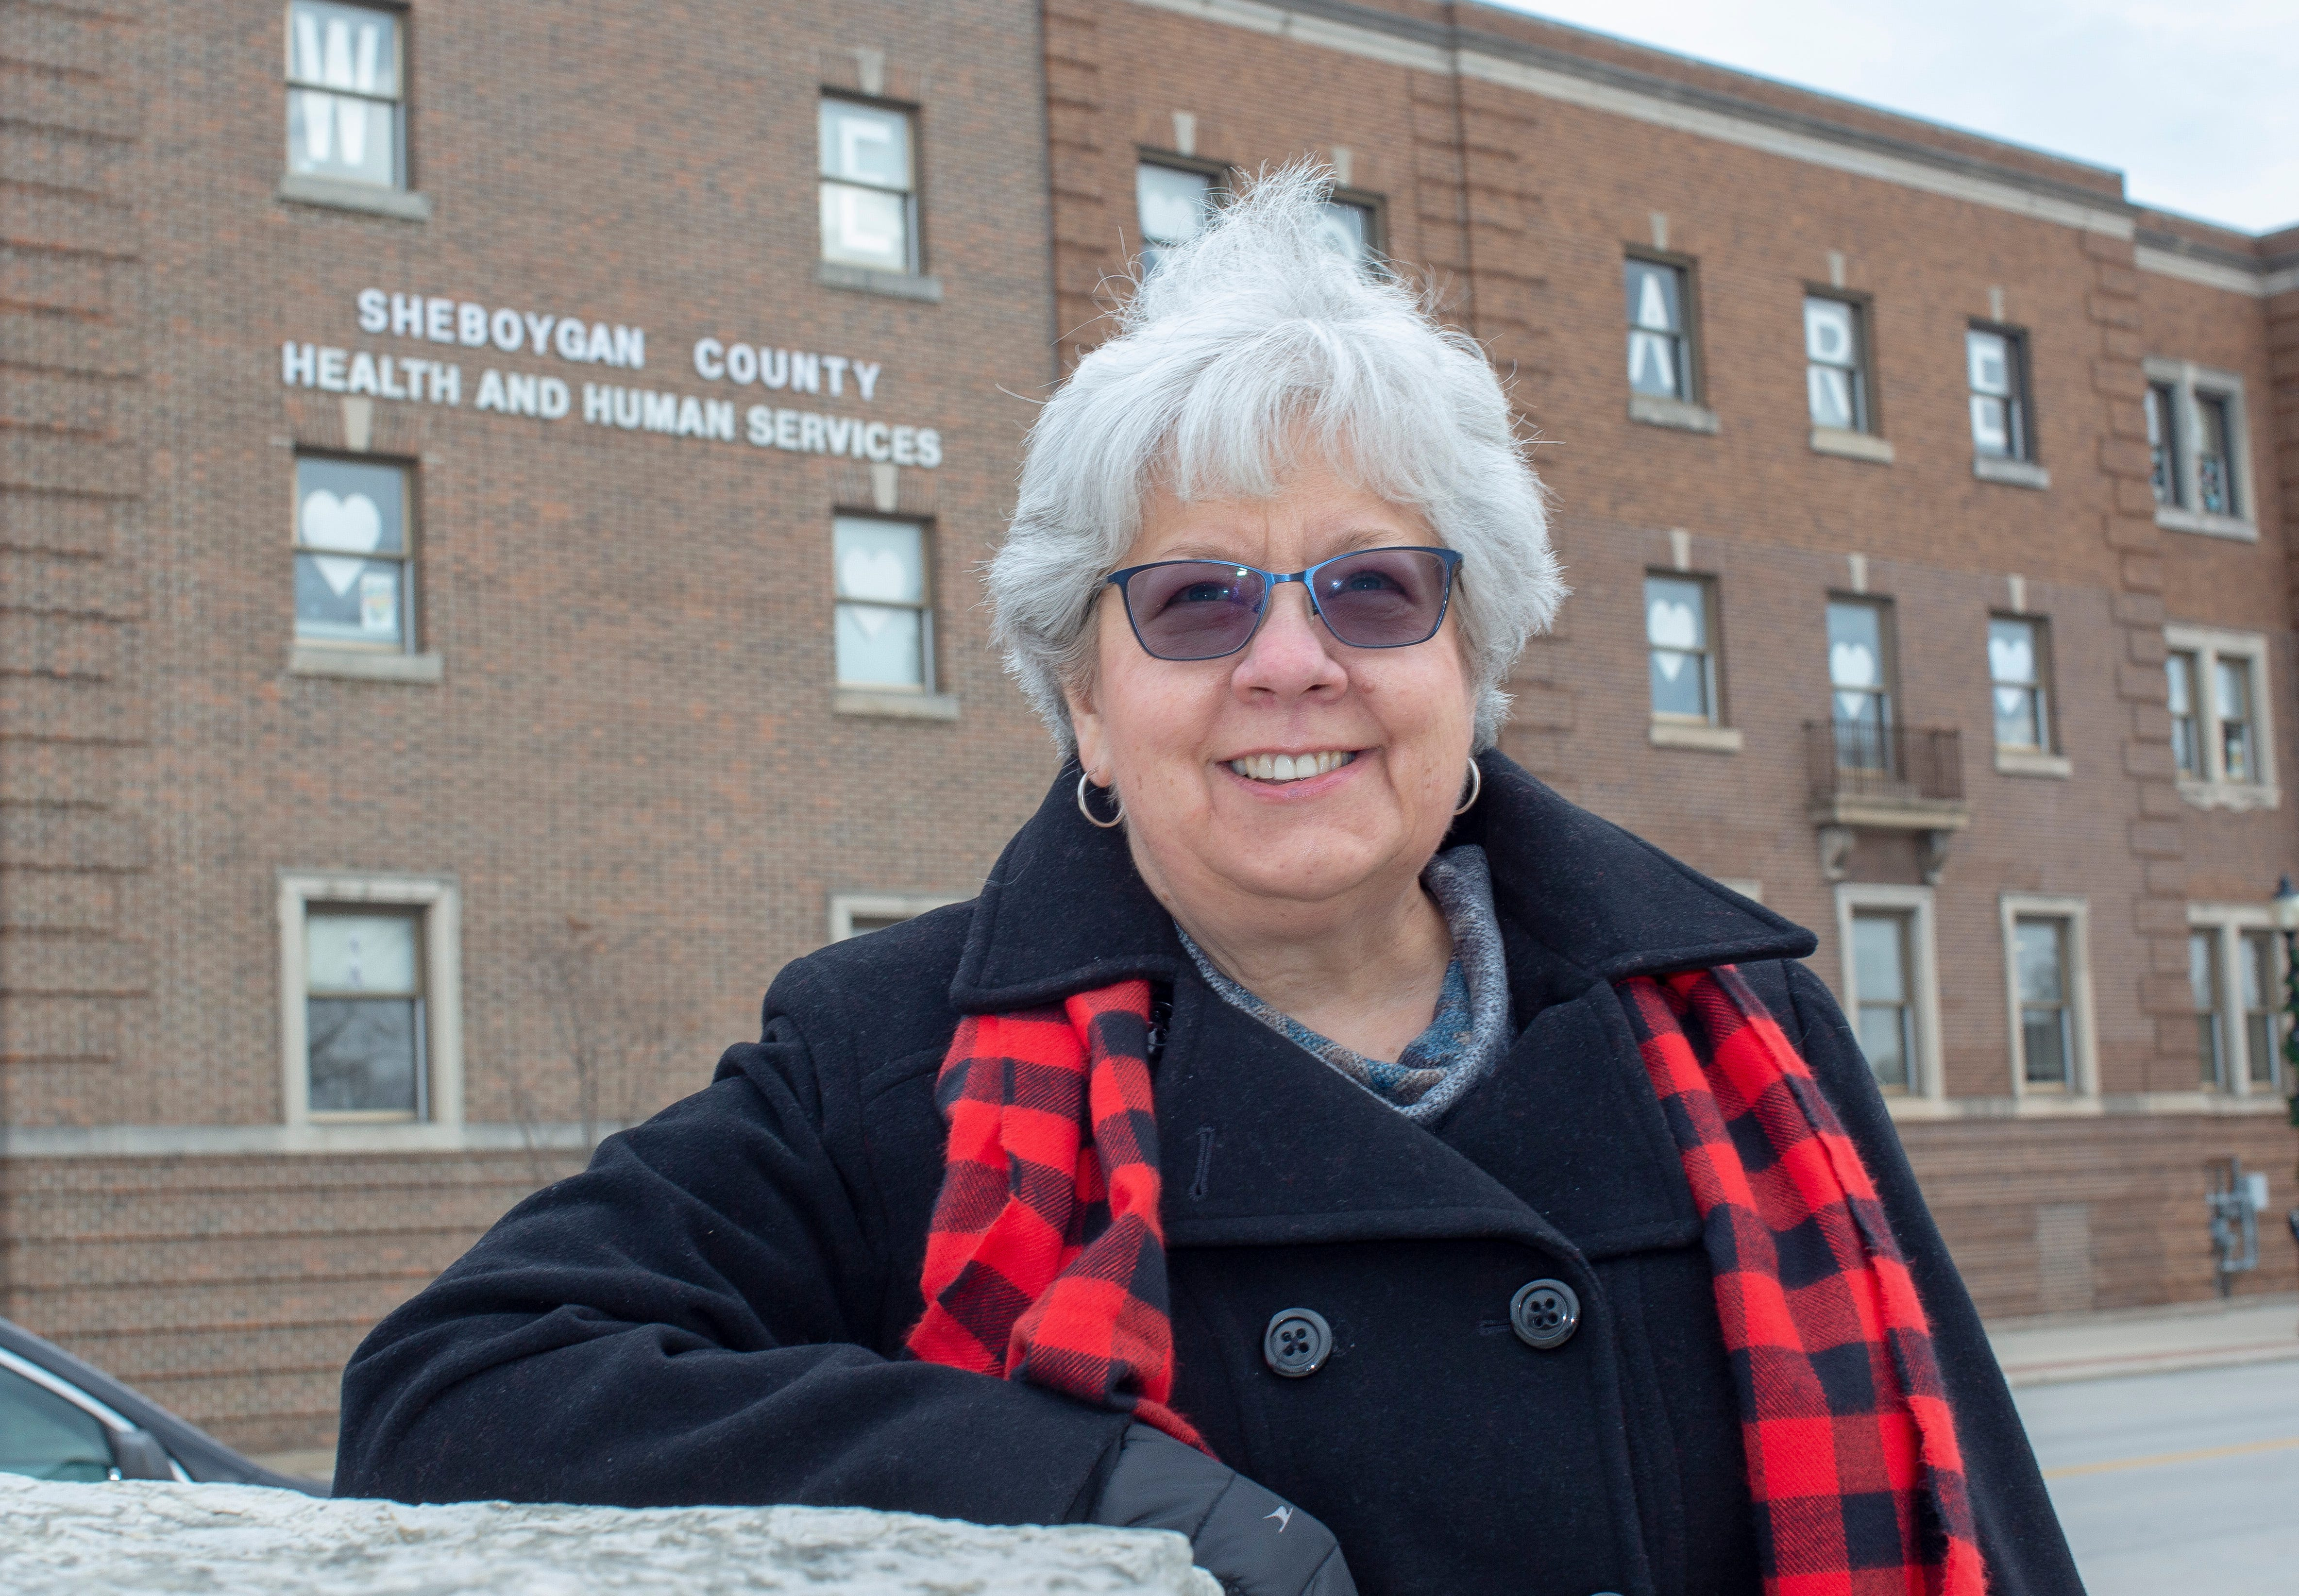 Jean Beinemann, who came out of retirement to help with the pandemic response for six months, poses near the Sheboygan County Health and Human Services Building on Tuesday, Dec. 8.